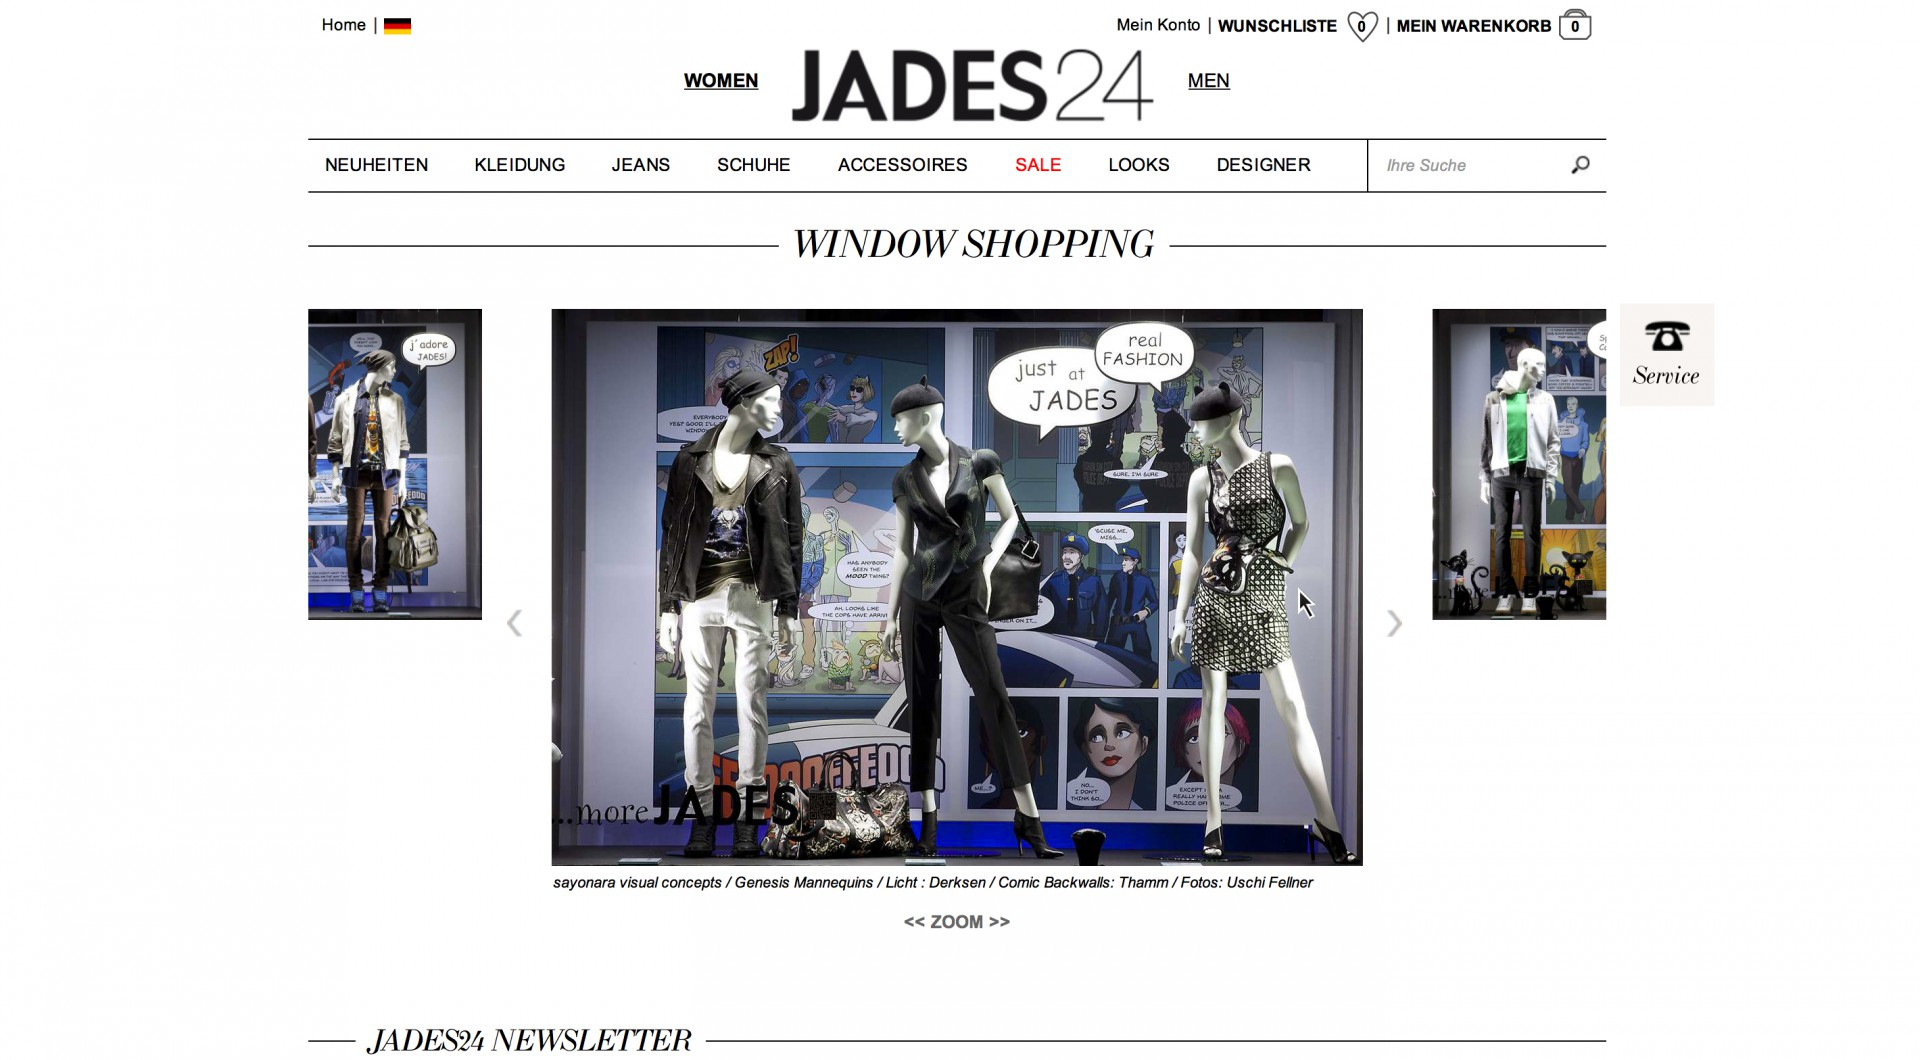 Concept for Virtual Window Shopping by Sayonara Visual Concepts / Domagoj Mršić and Jades 24. Realization by Jades 24.